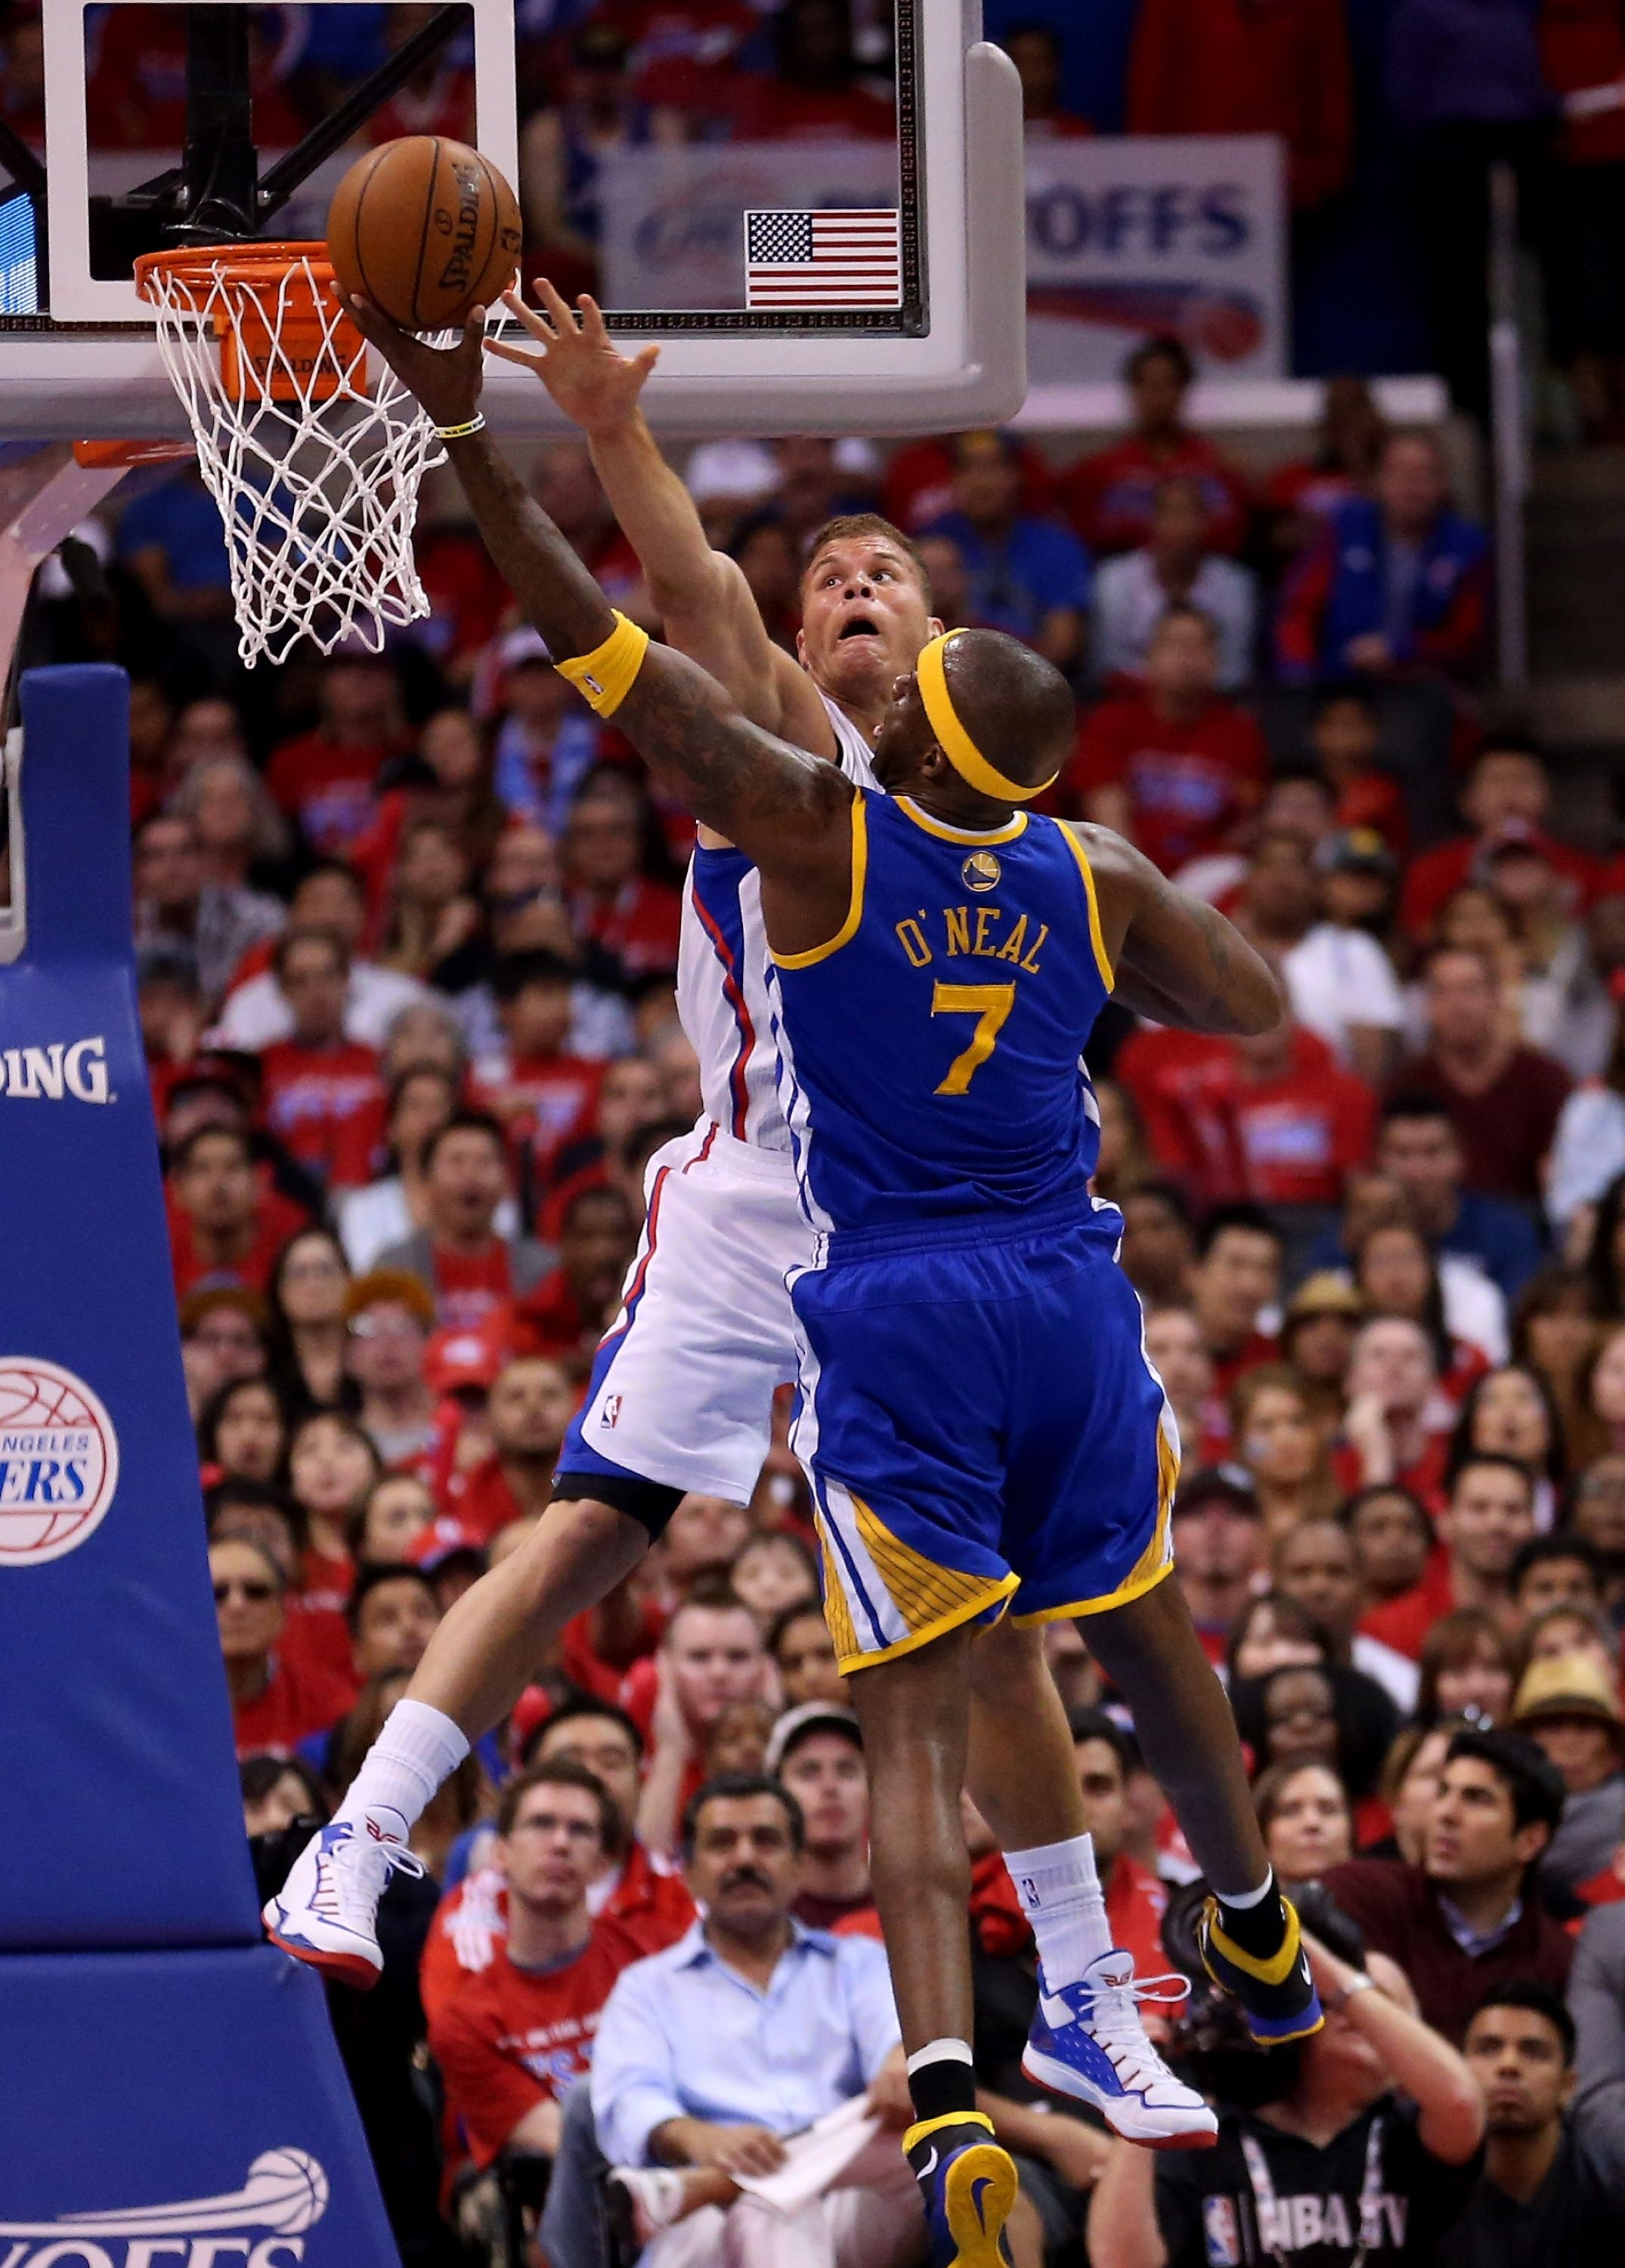 Pin By Joy Concepcion On Pro Sports Best Of Blake Griffin Jermaine O Neal Golden State Warriors